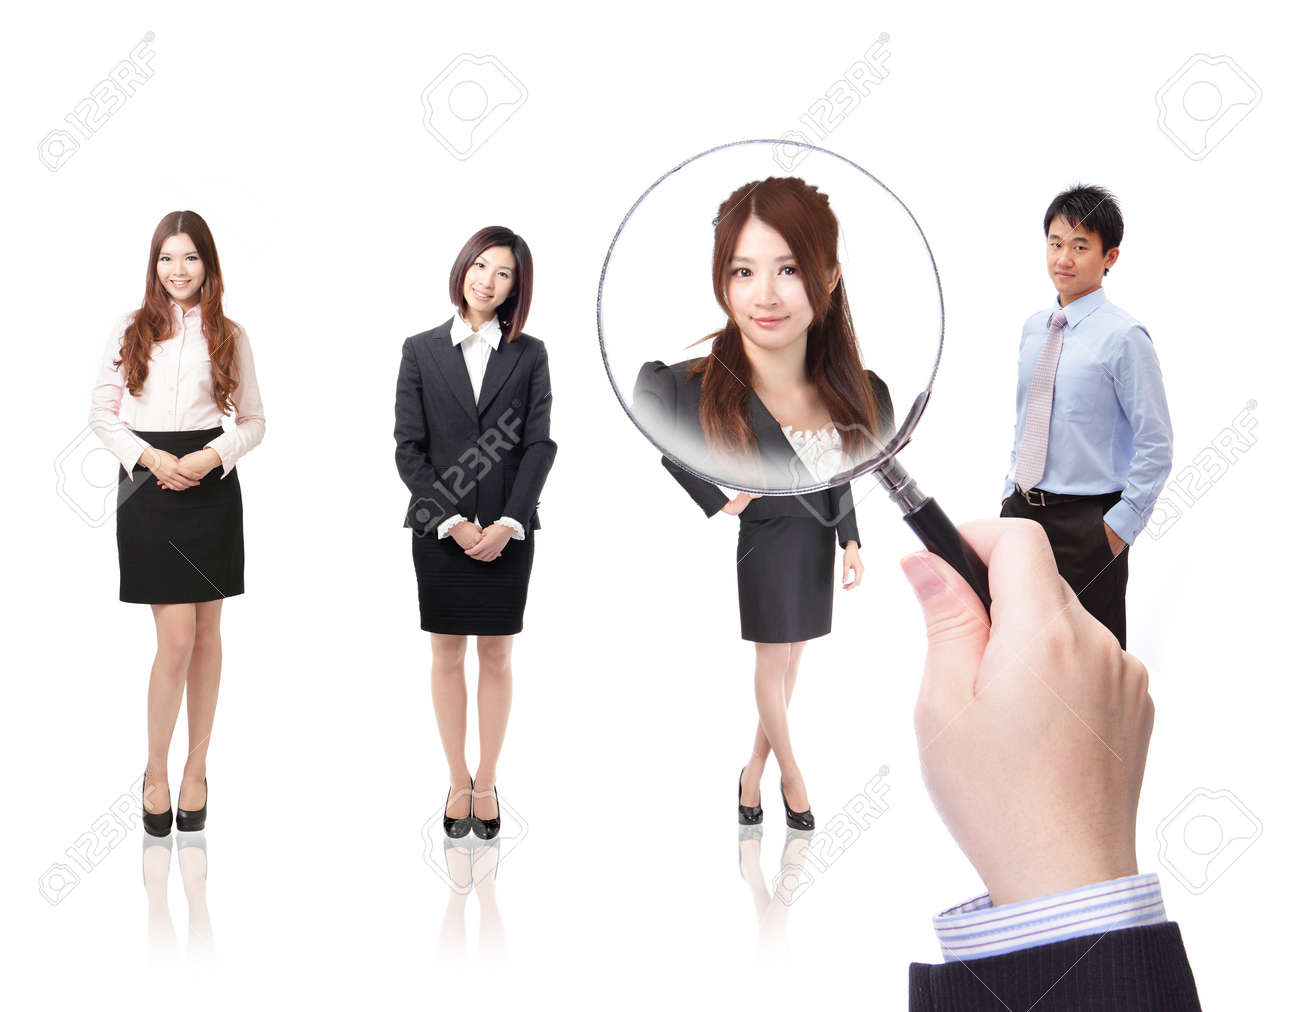 find the best candidates images stock pictures royalty find the best candidates human resources concept choosing the perfect candidate for the job